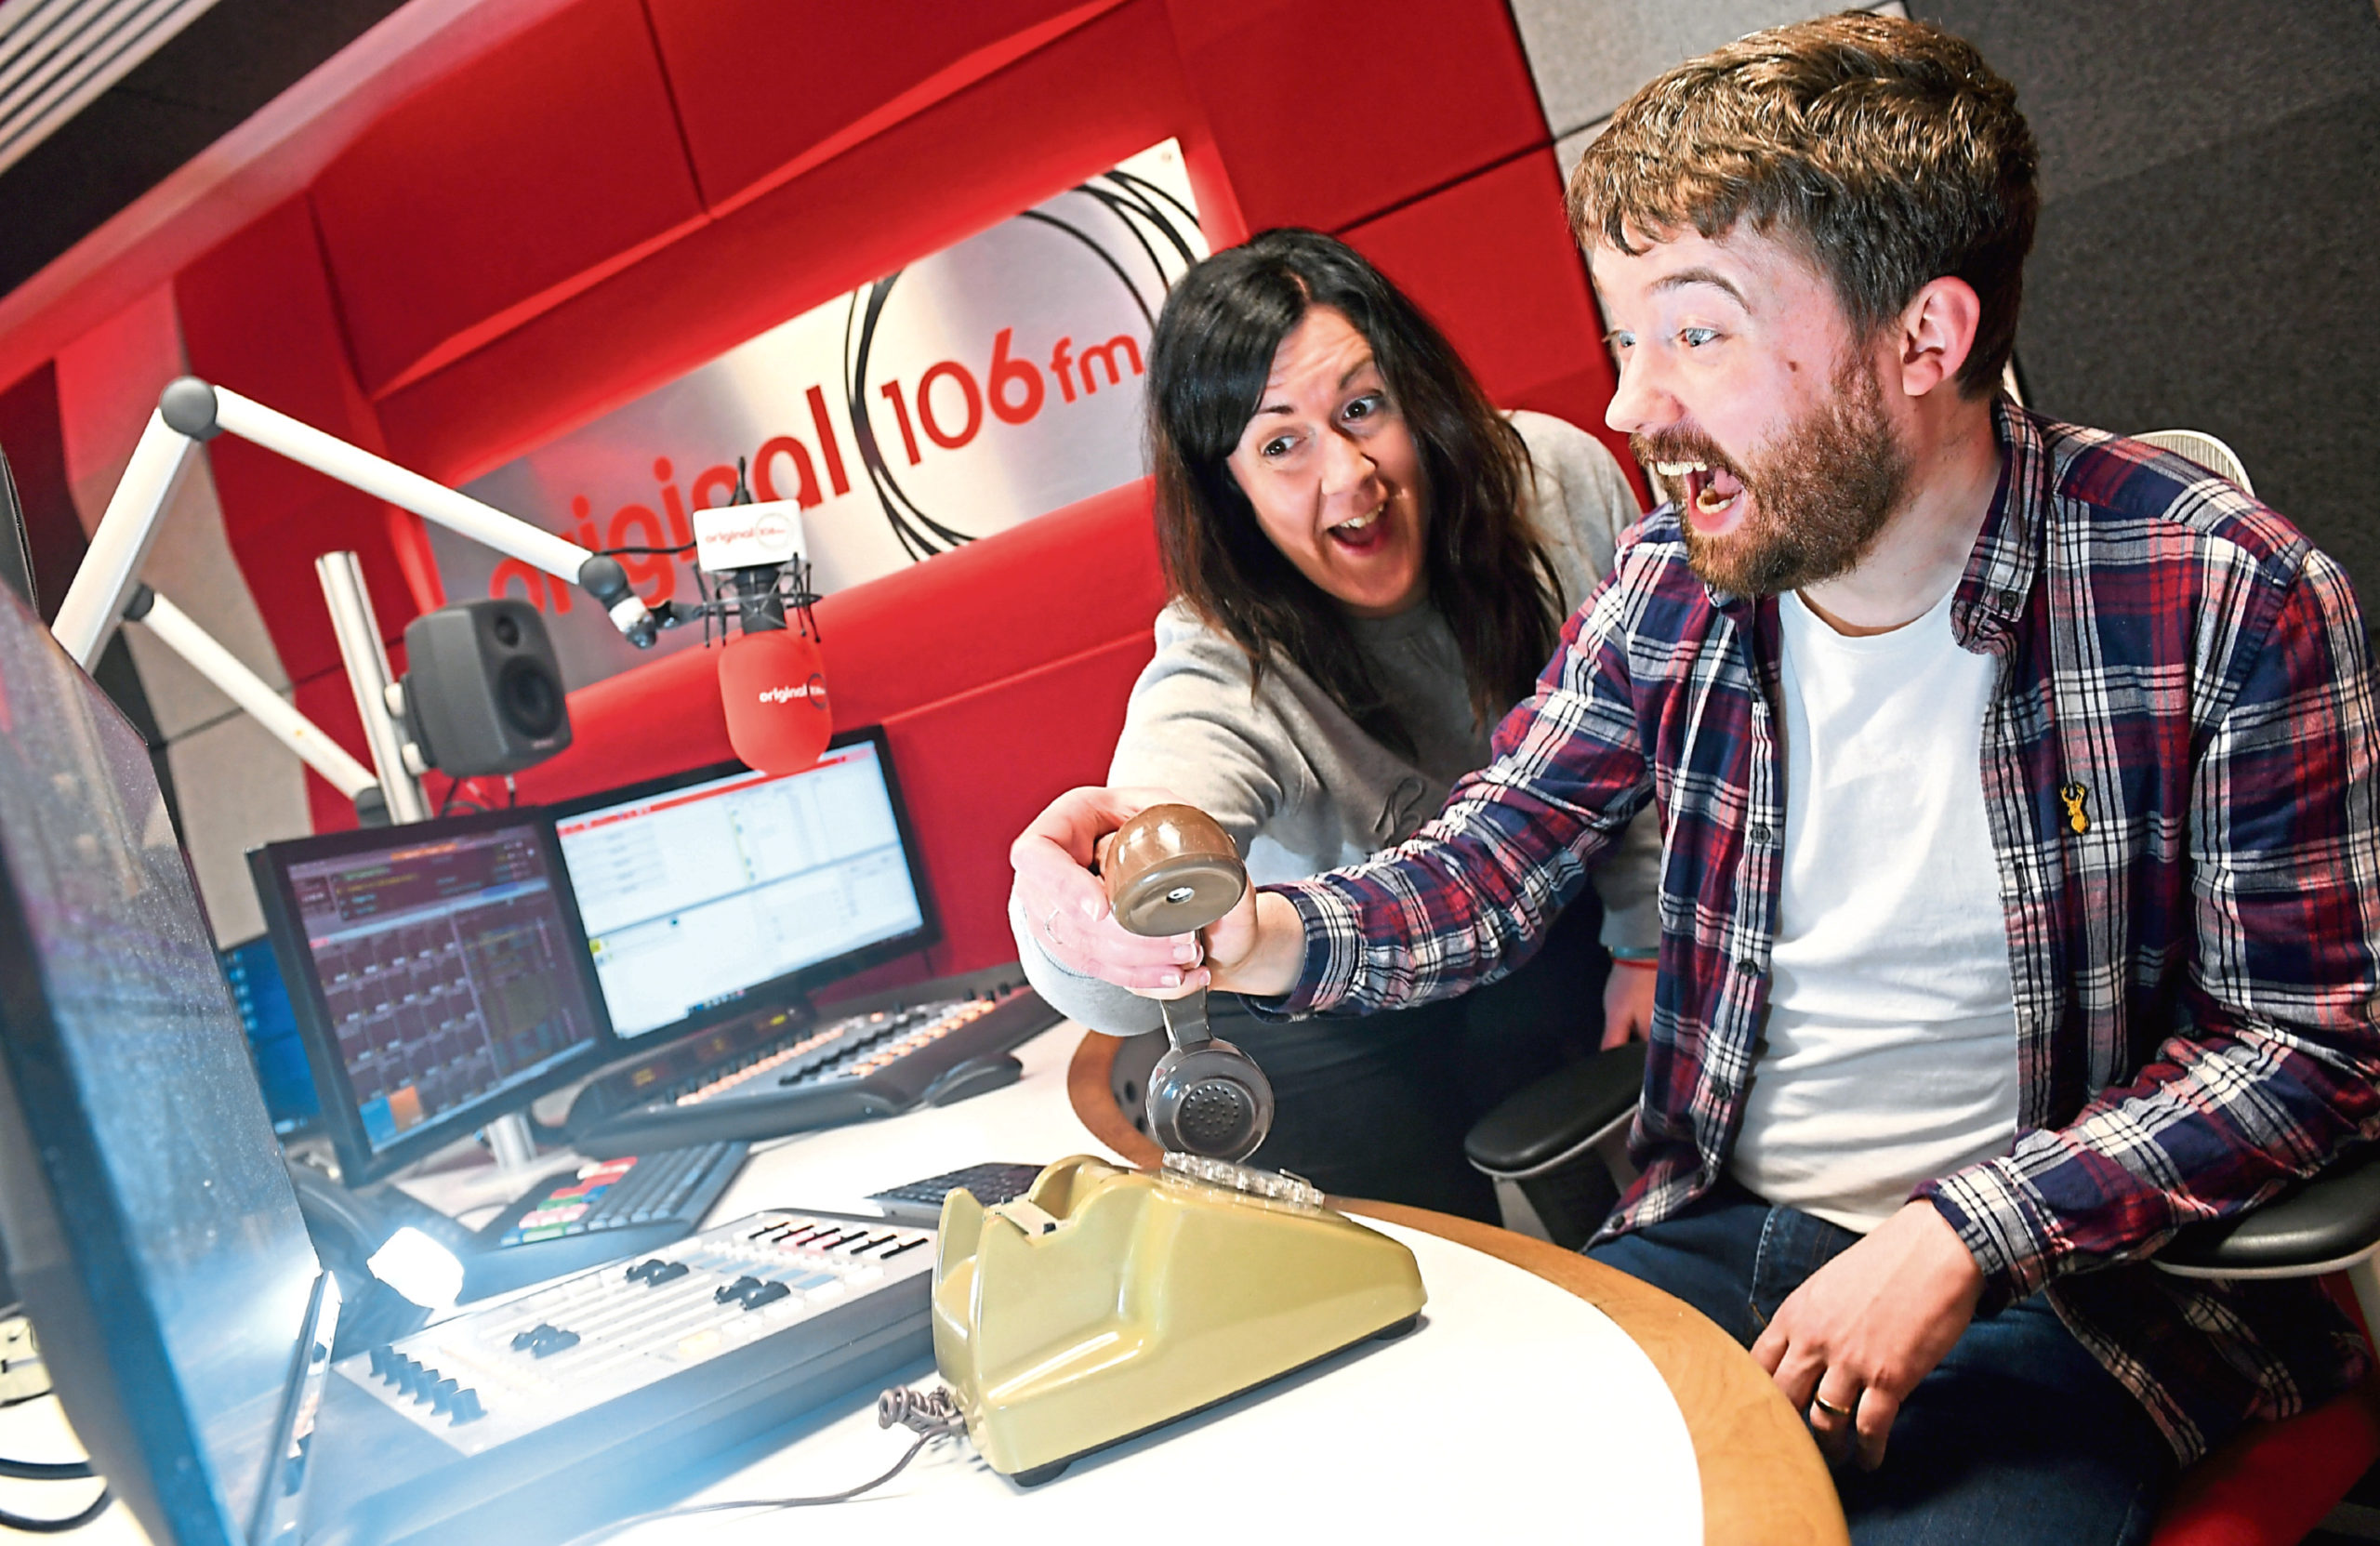 Claire Stevenson and David Lewis of the Original 106 breakfast show try to solve the mystery of the interruptions while the show was on air